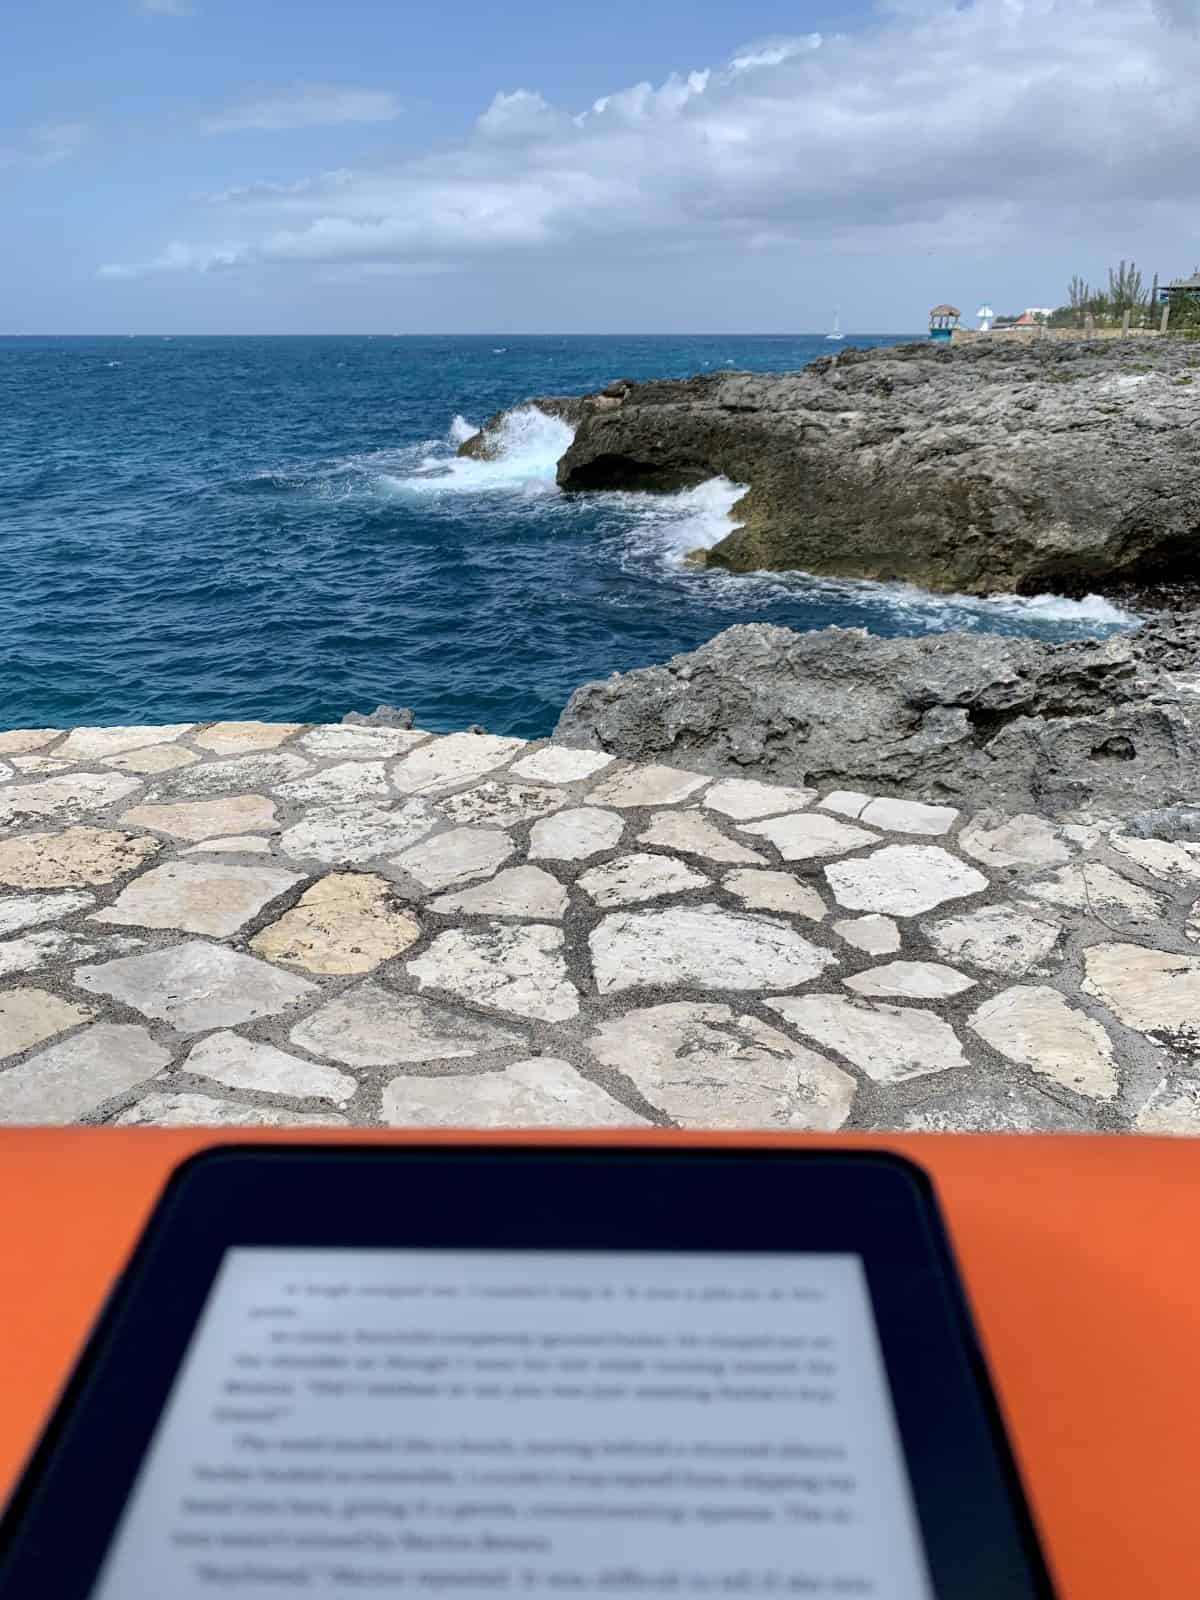 Just me and my kindle...what to do in Negril